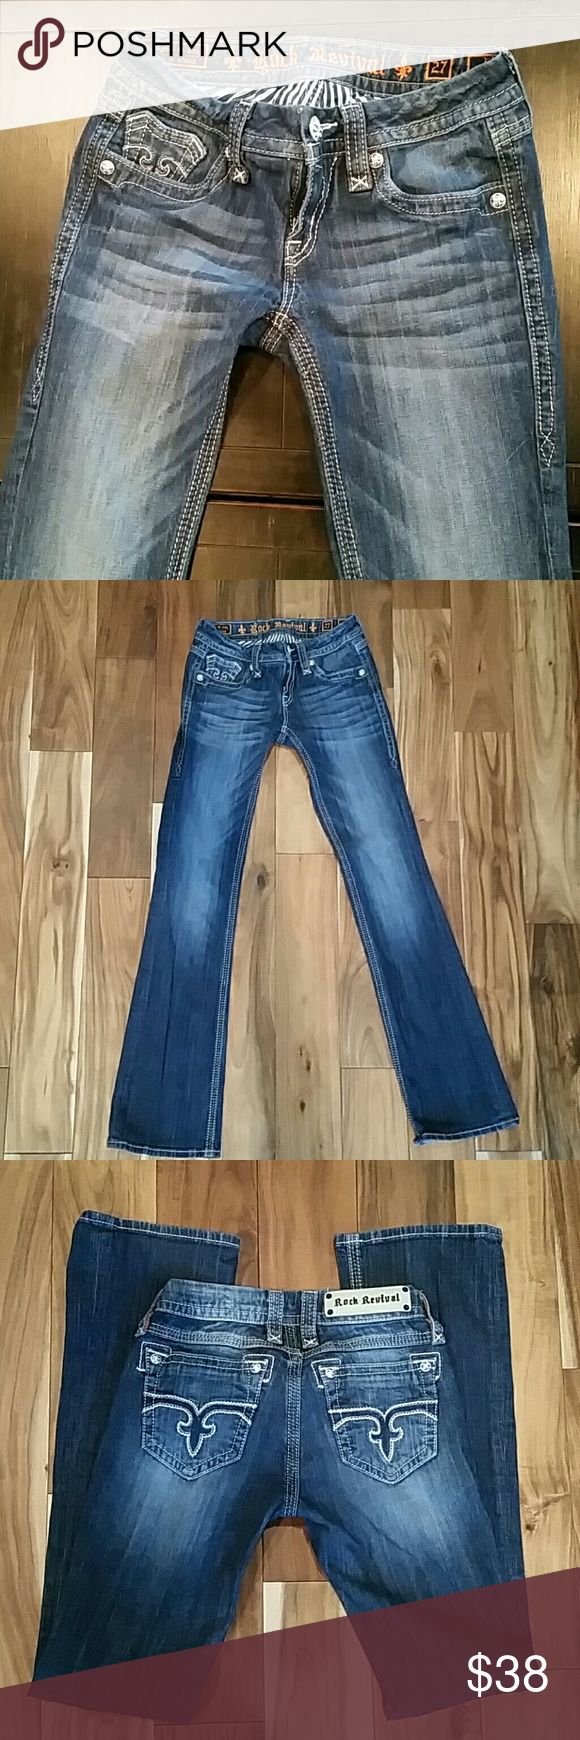 Like new size 27 Rock Revival Jeans Only wore these a few times before I got pregnant and gained too much weight to wear them. Love these jeans!! Rock Revival Jeans Boot Cut